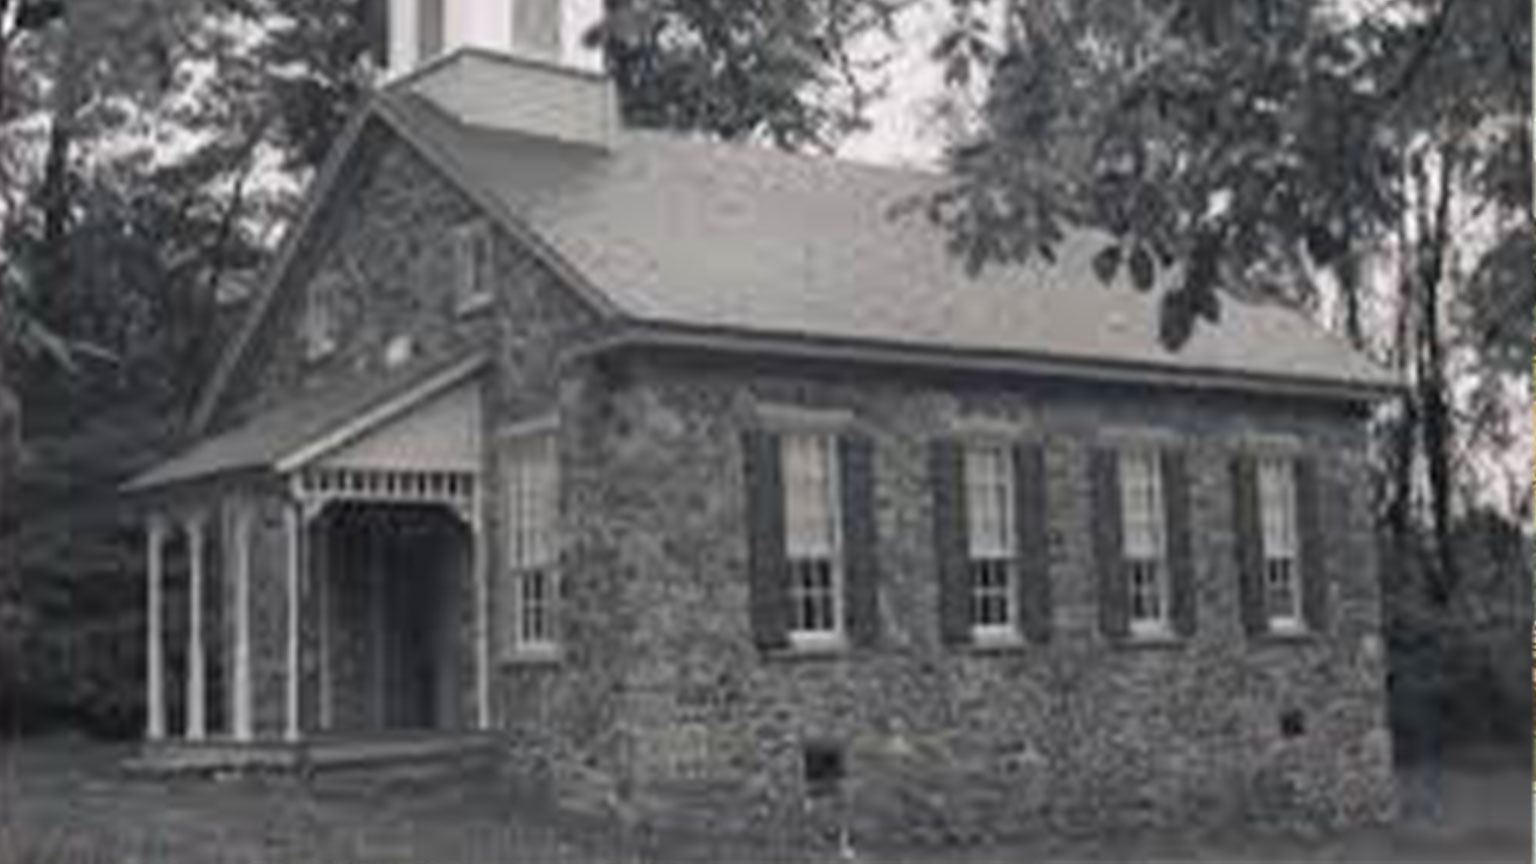 Photograph of the Lutz Franklin School